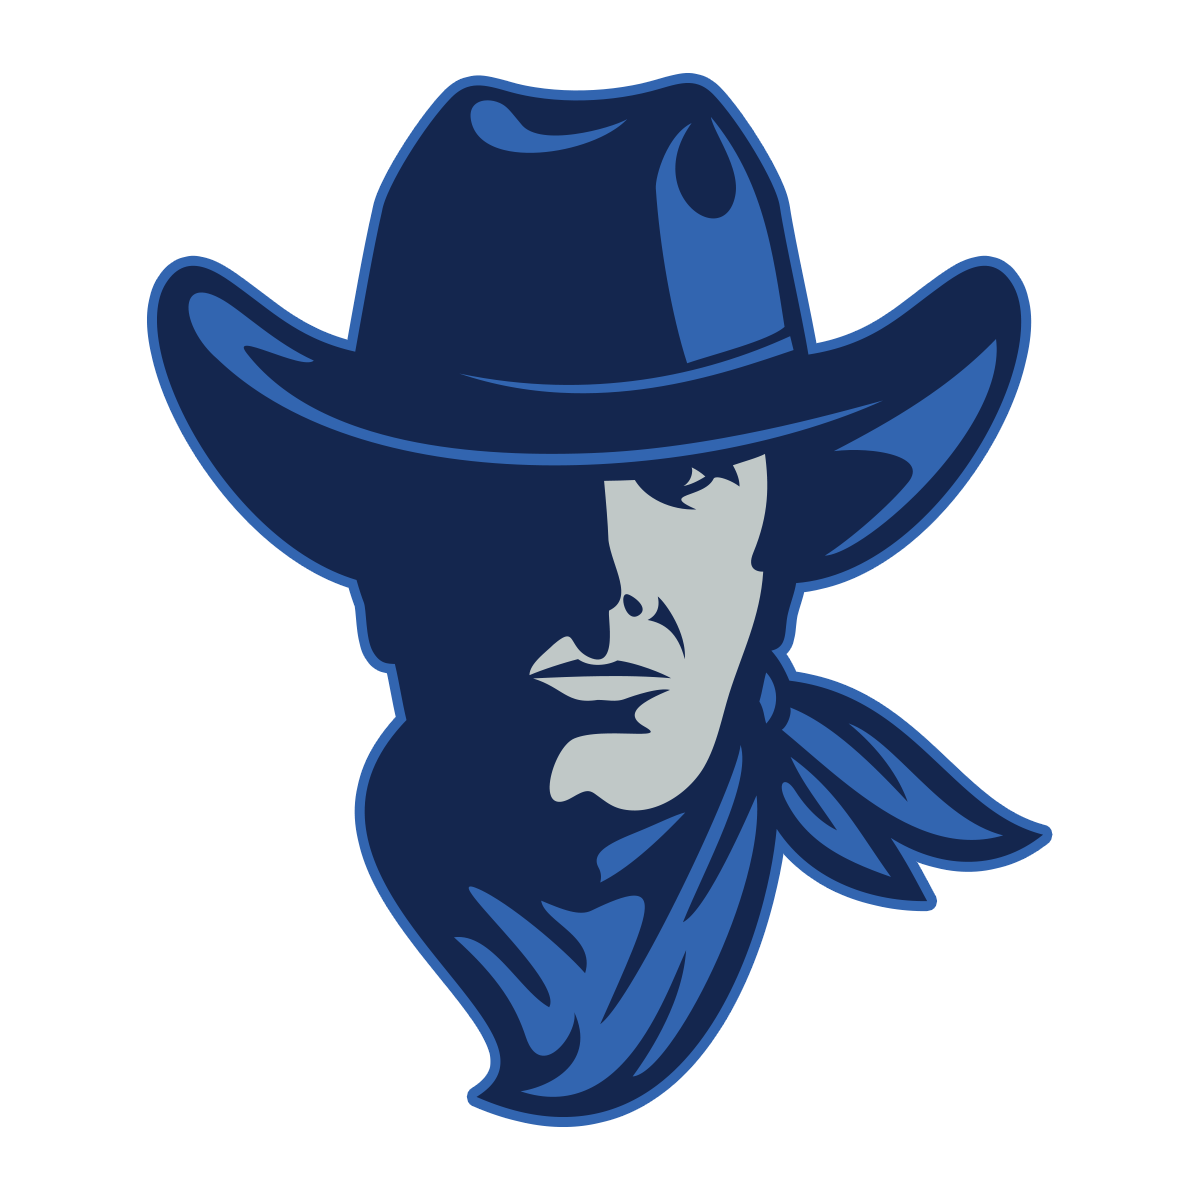 Dallas cowboys clipart stetson. Cowboy pic group wire